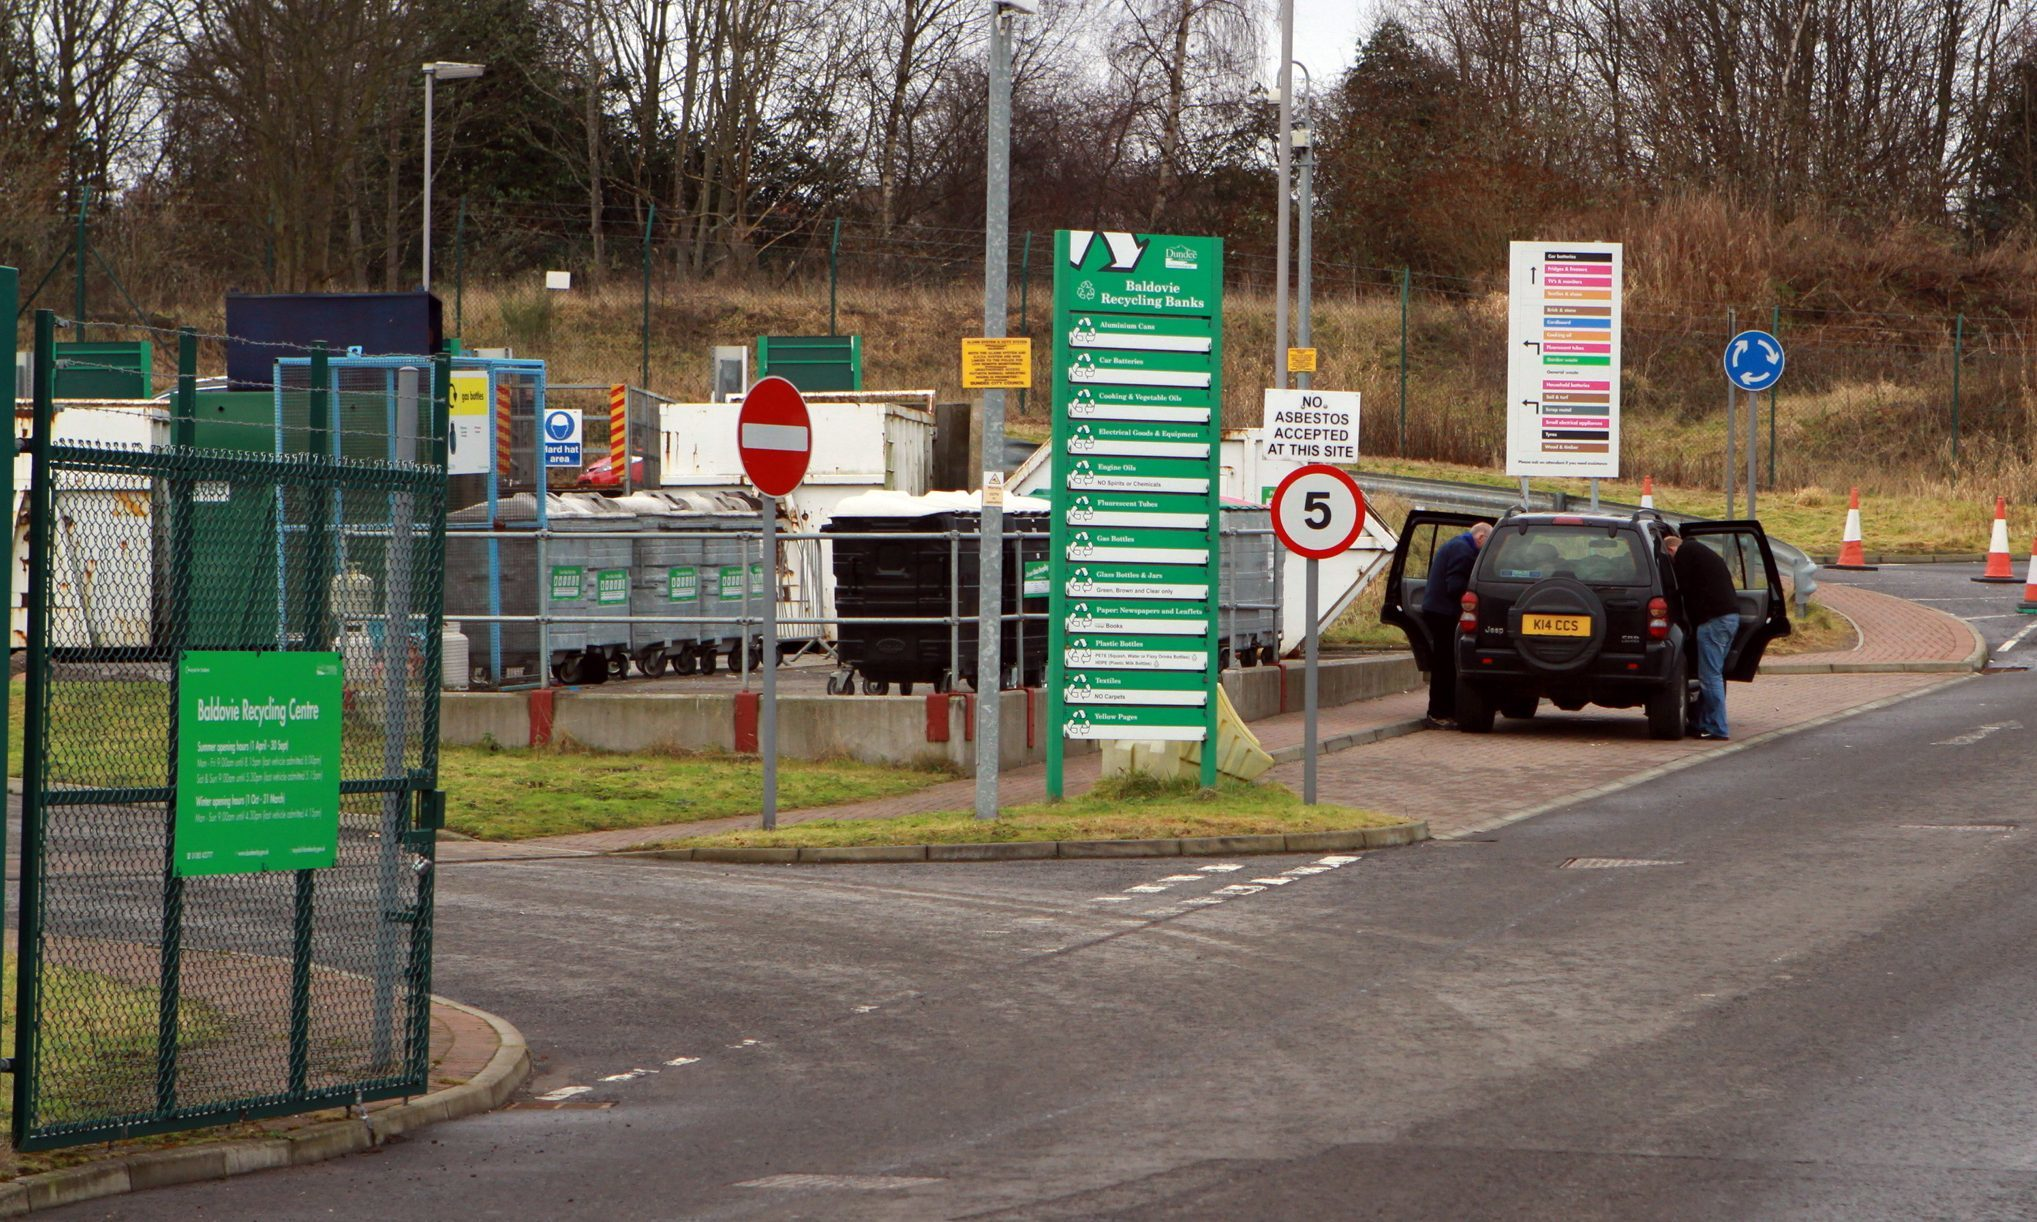 Surveys found an increase in the number of businesses using public recycling centres to avoid trade fees.